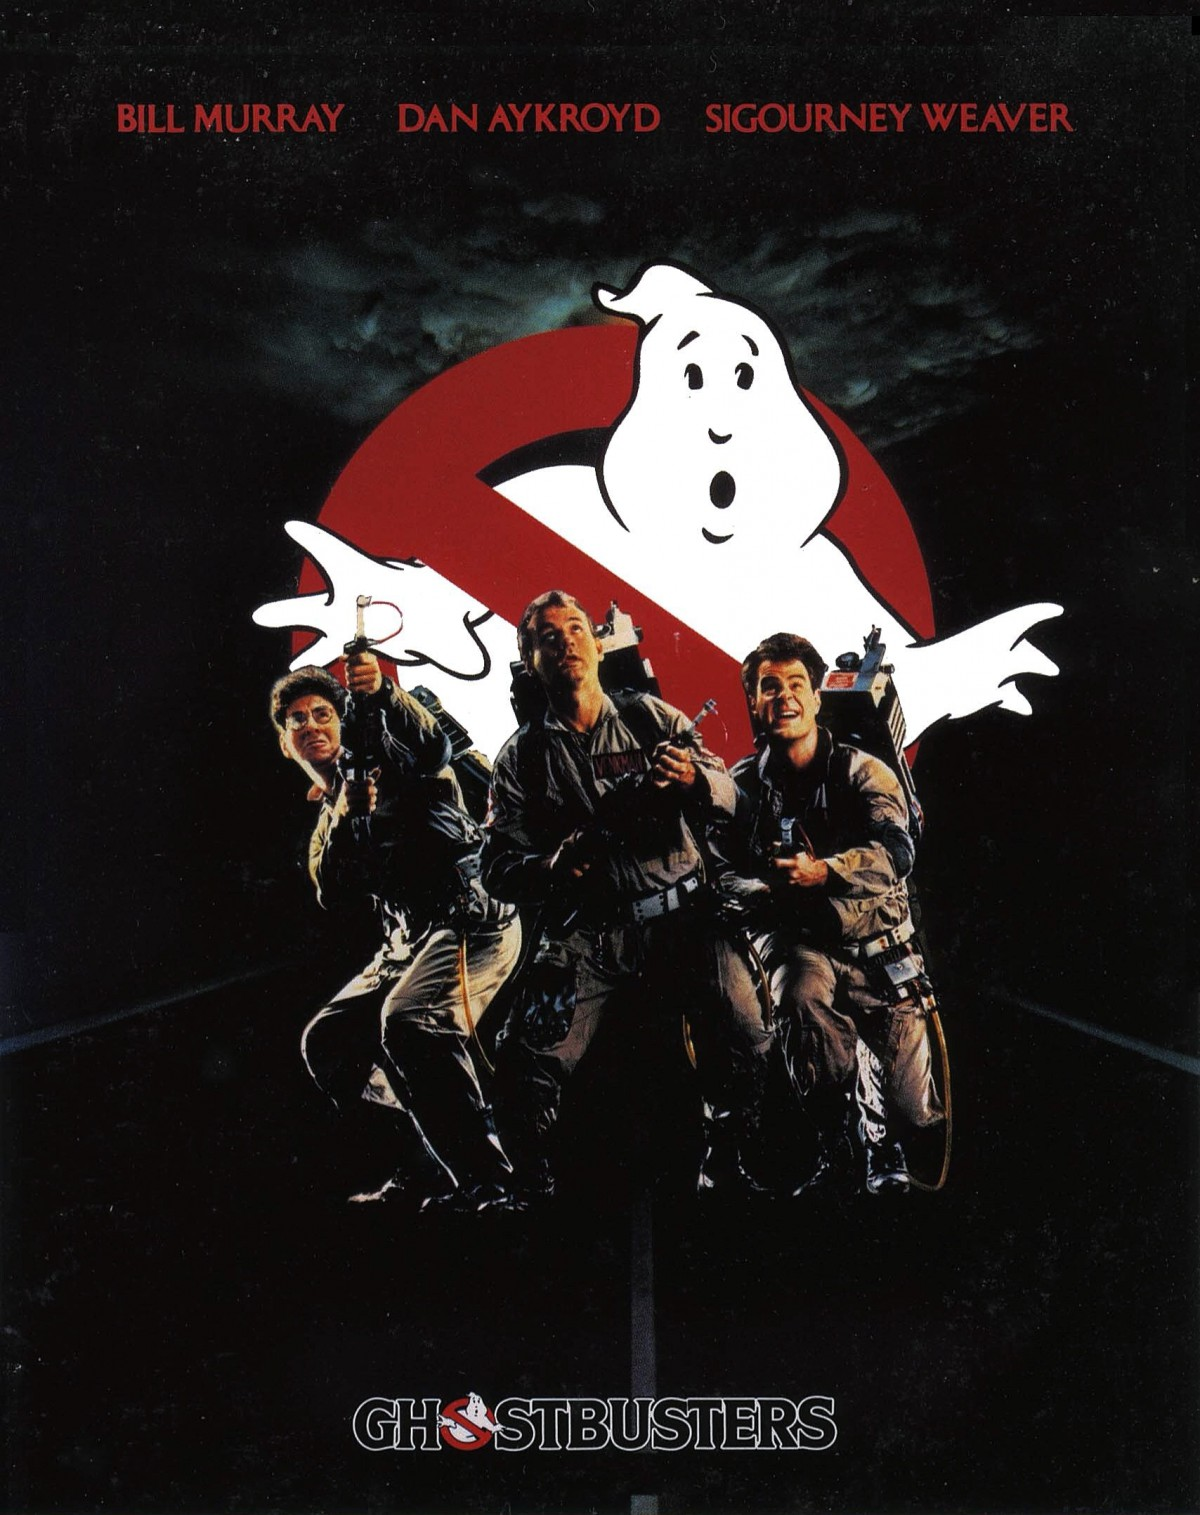 18. Ghostbusters (1984)